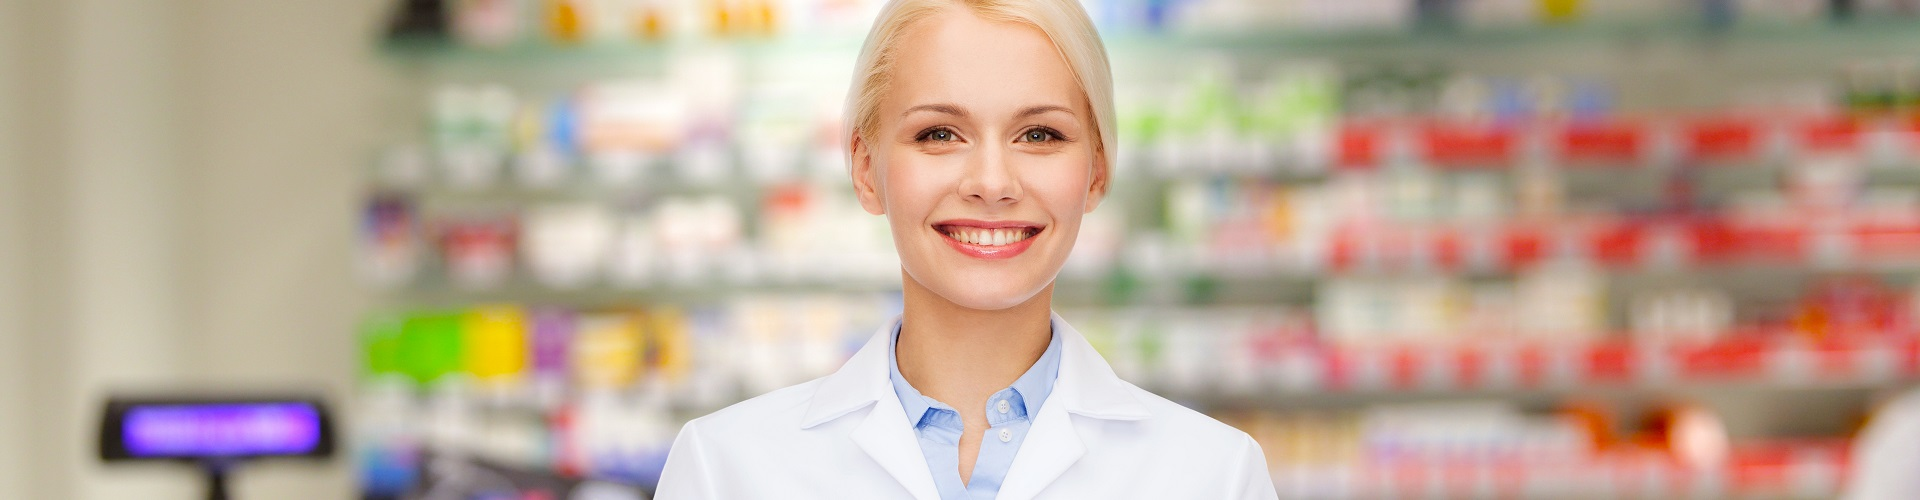 beautiful pharmacist